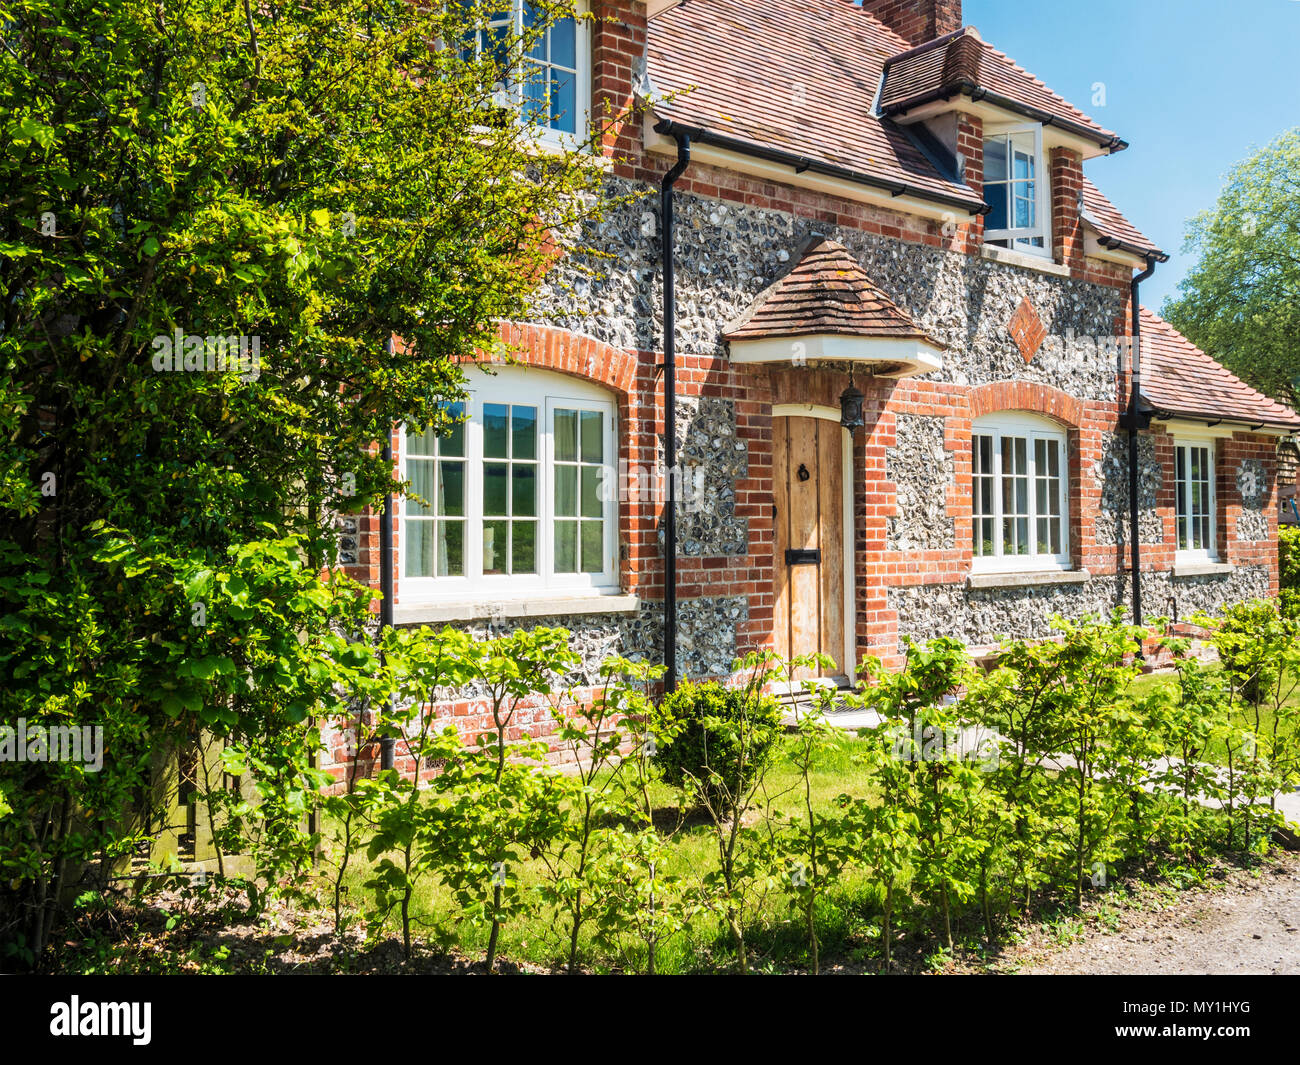 A typical brick and flint country cottage in Wiltshire. - Stock Image